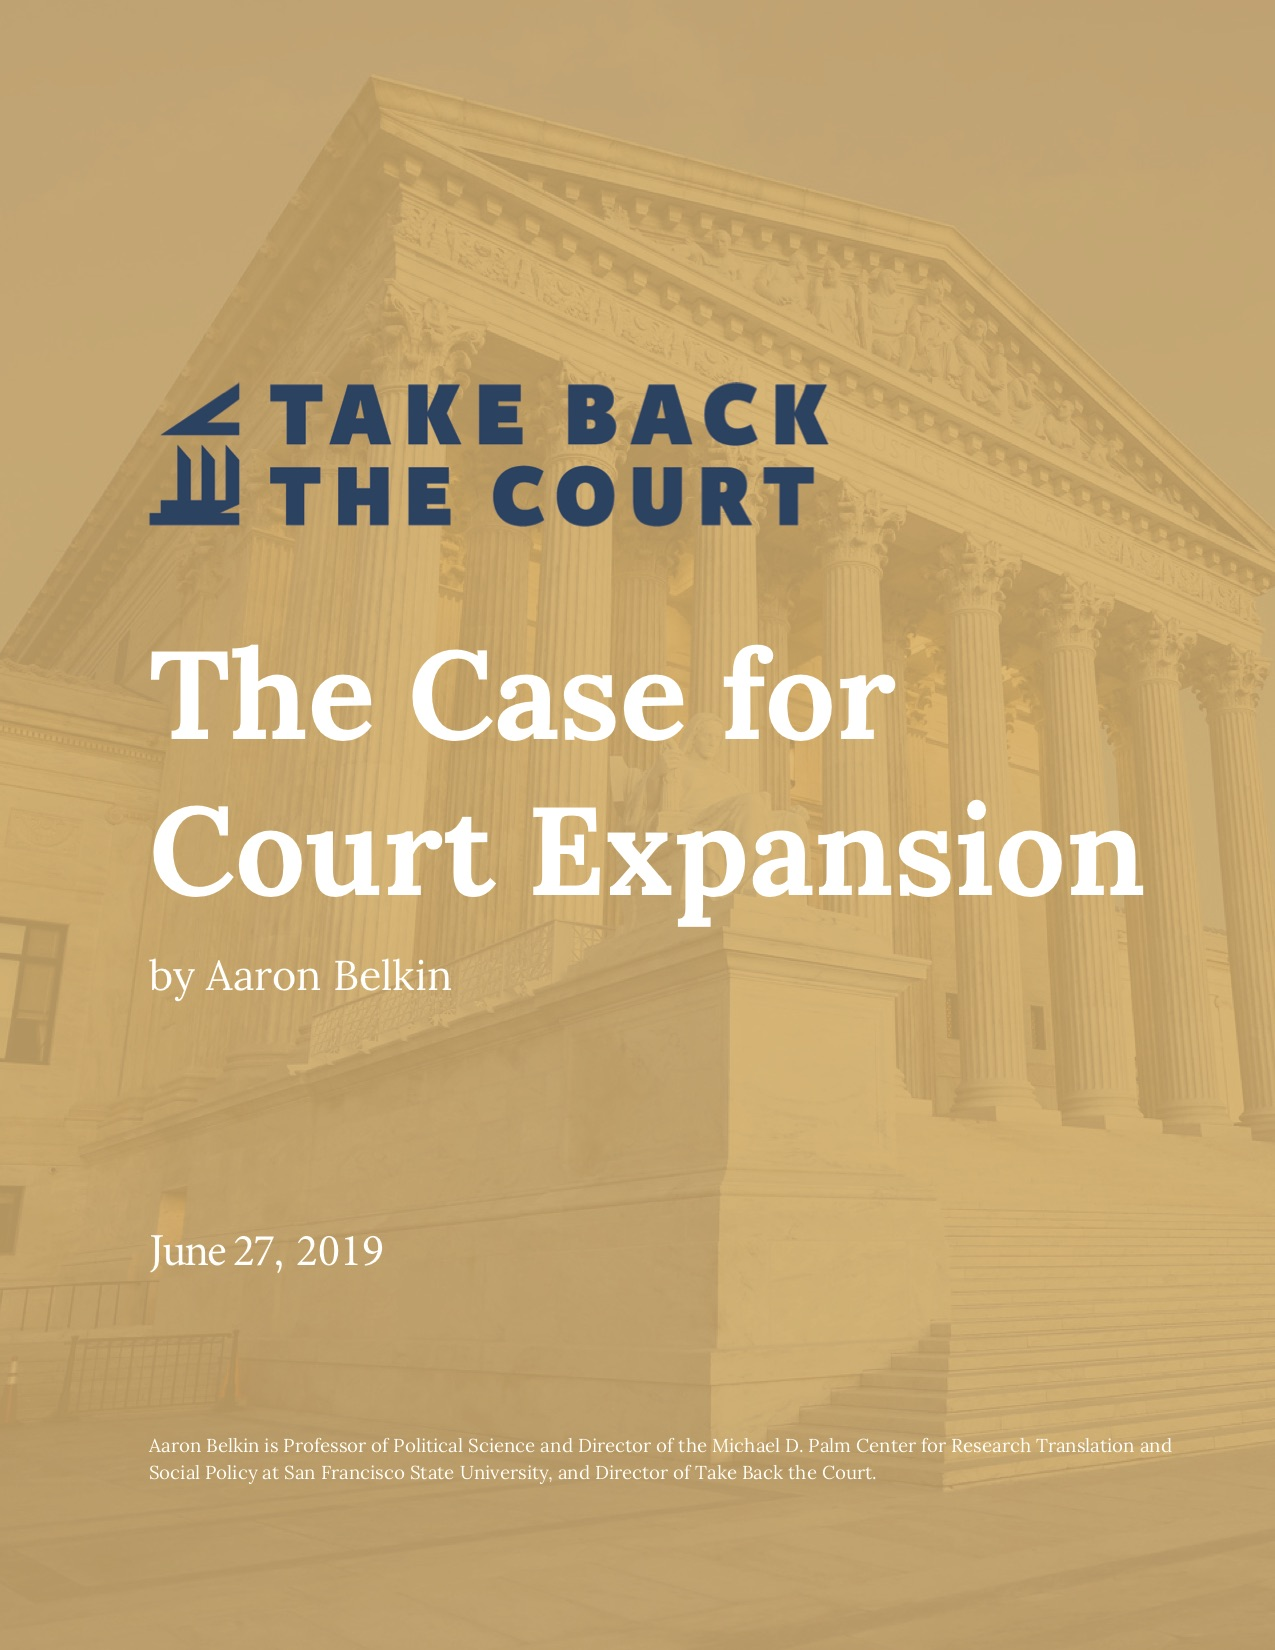 The+Case+for+Court+Expansion.jpg